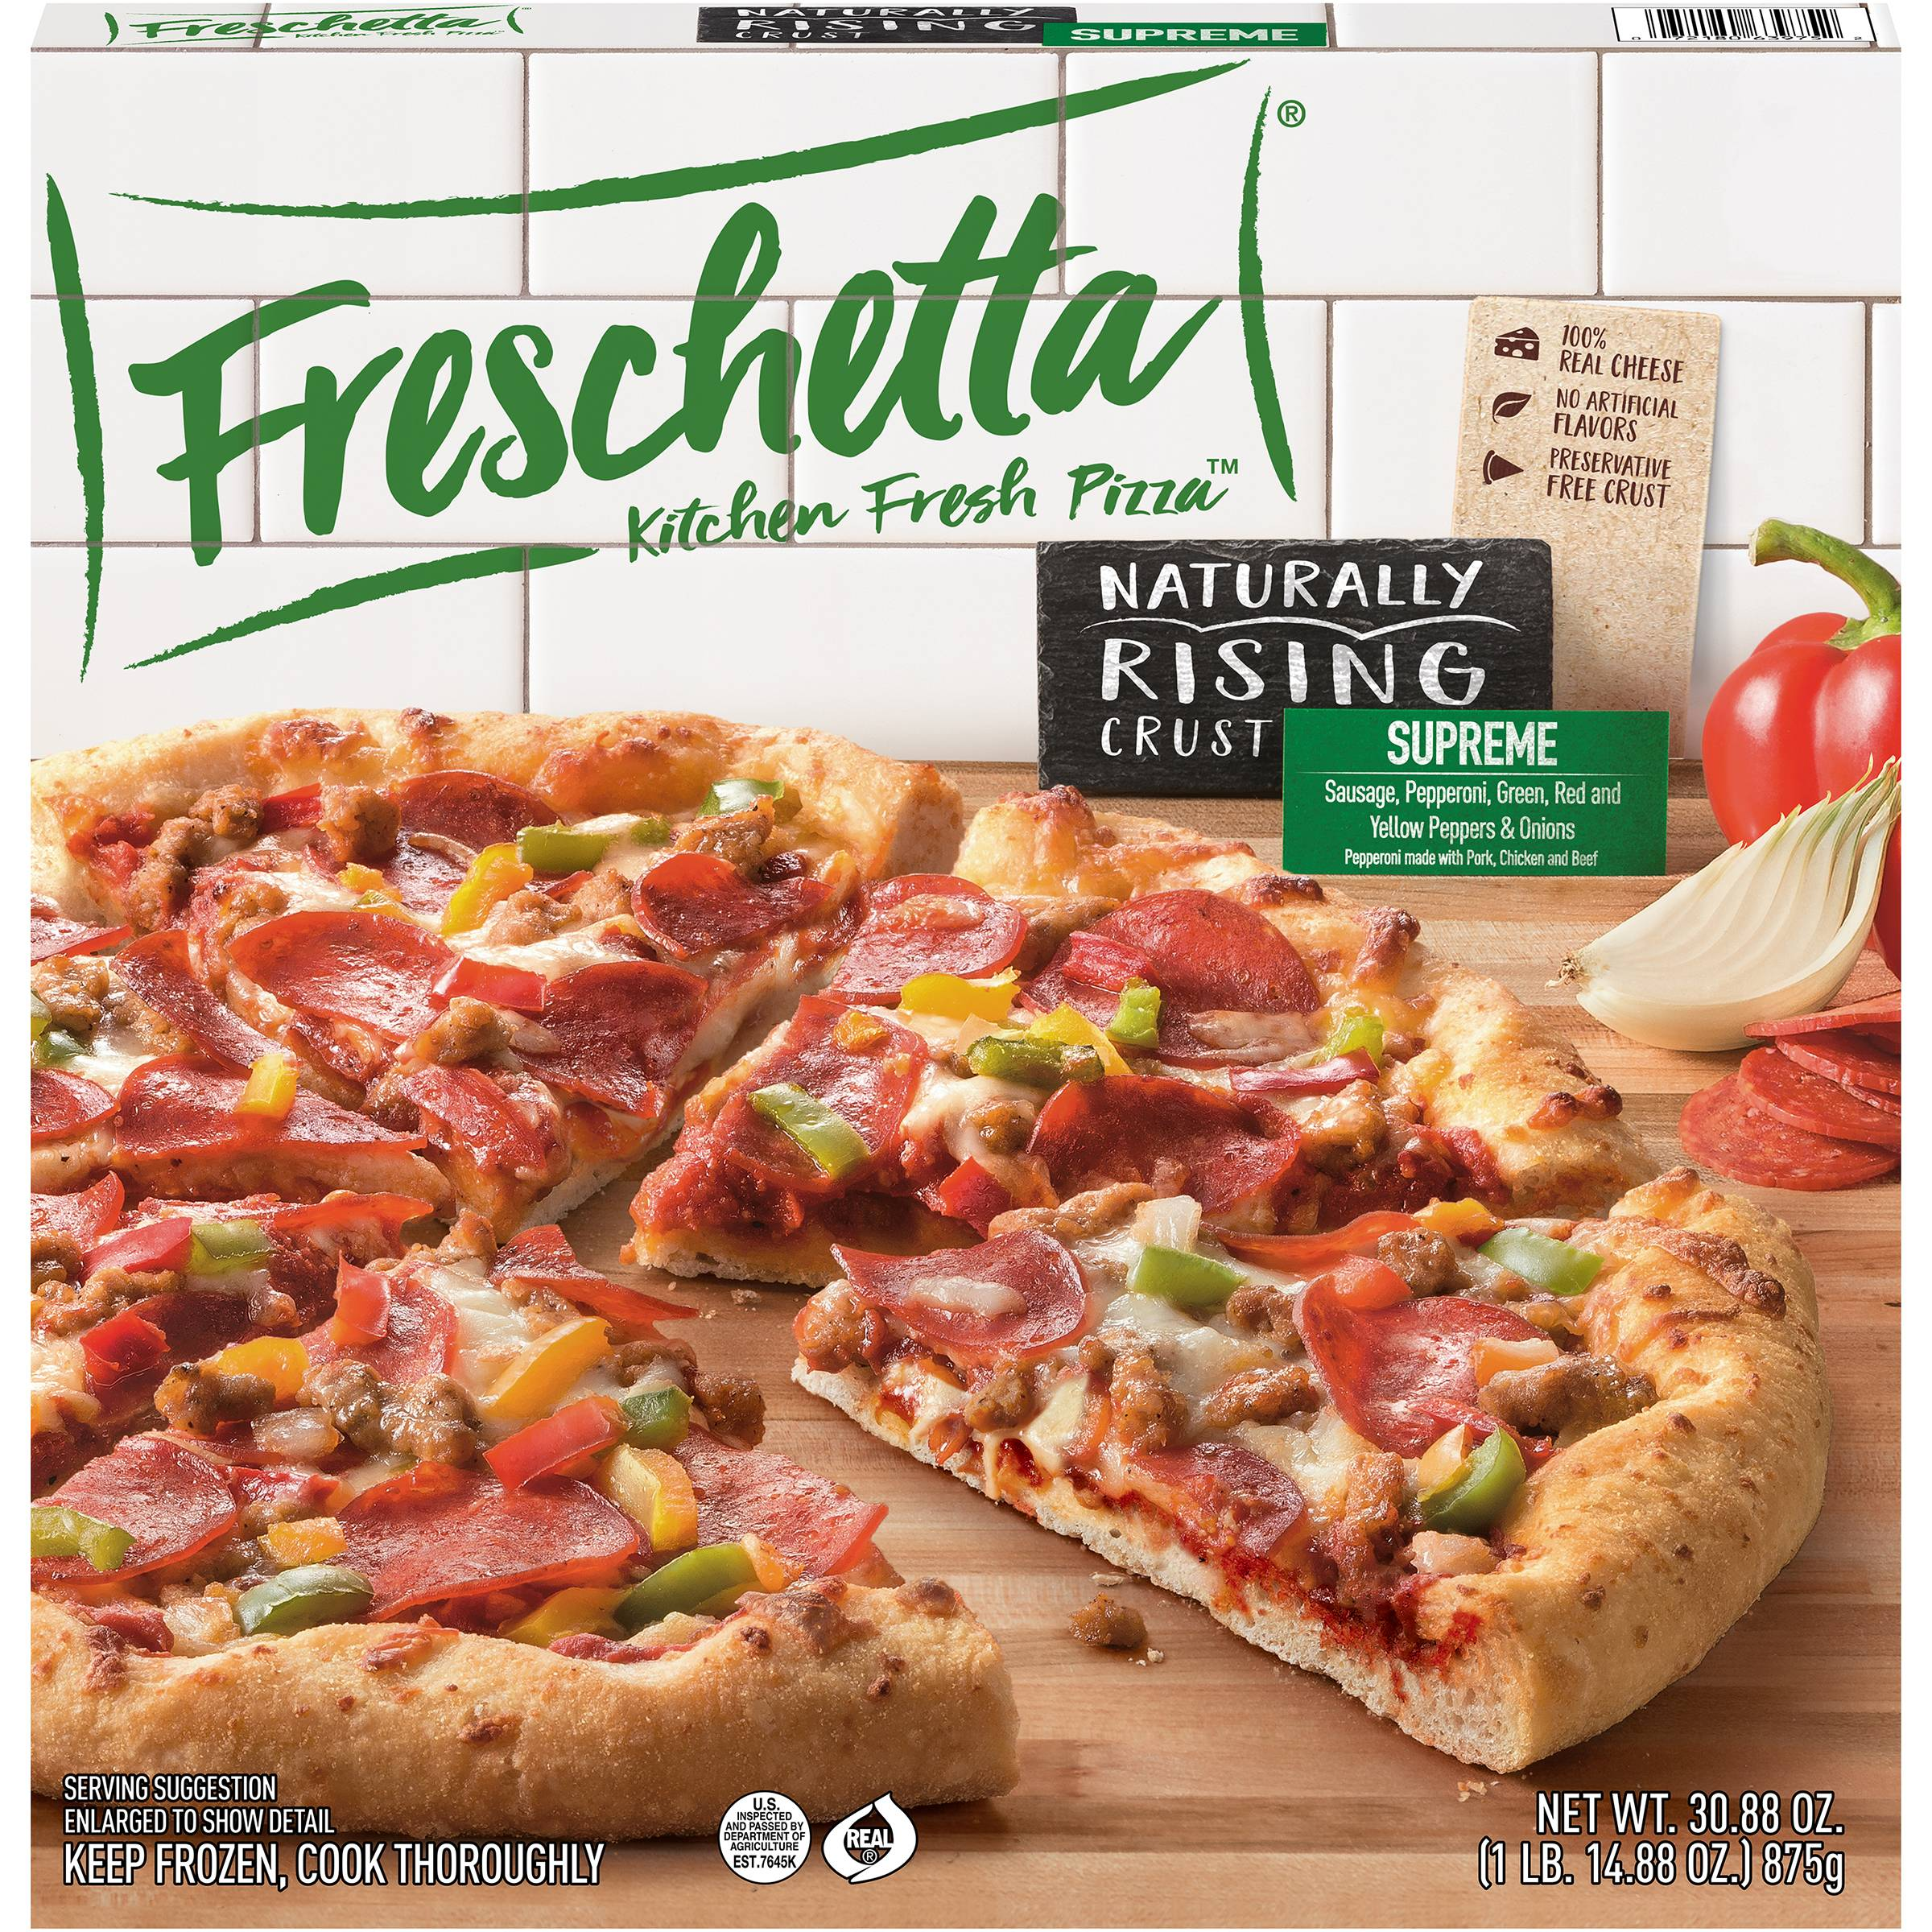 Freschetta® Naturally Rising Crust Classic Supreme Pizza 30.88 oz. Box